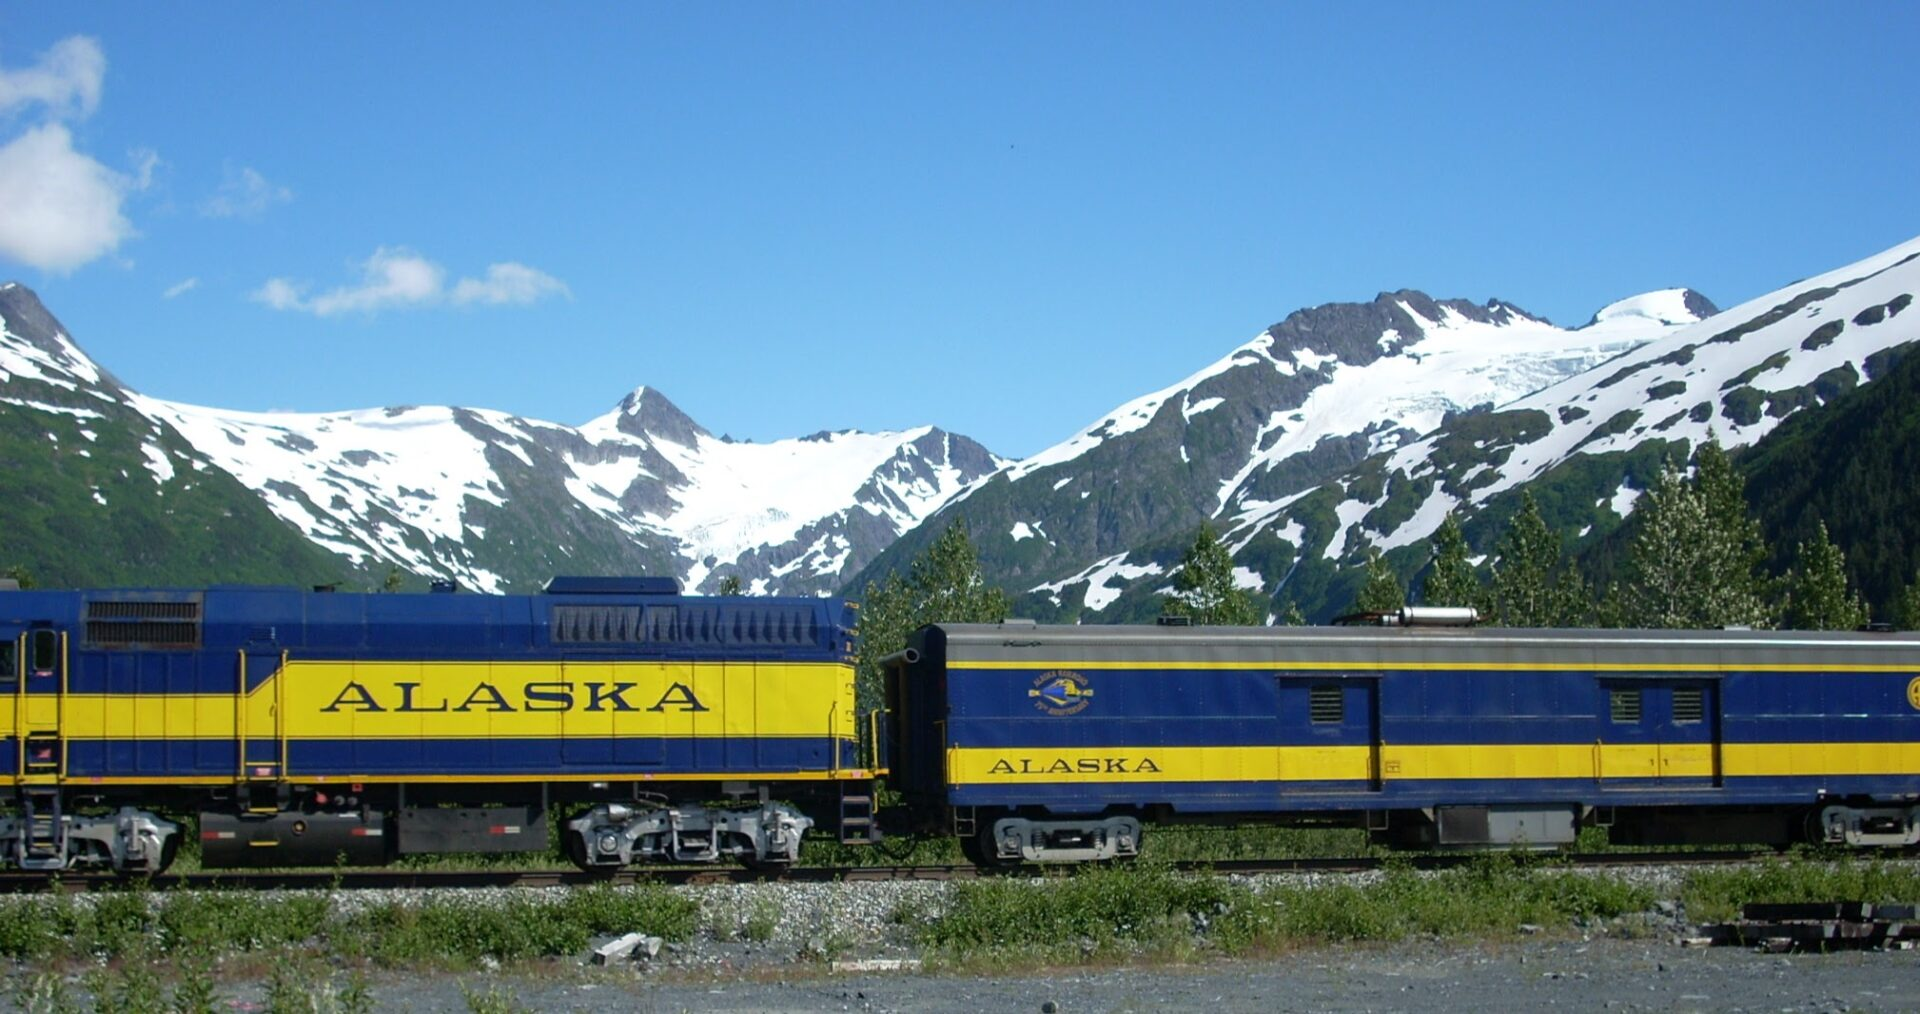 An engine and baggage car for the Alaska Railroad, an Alaska itinerary without a car. In the background are glacier covered mountains against a blue sky